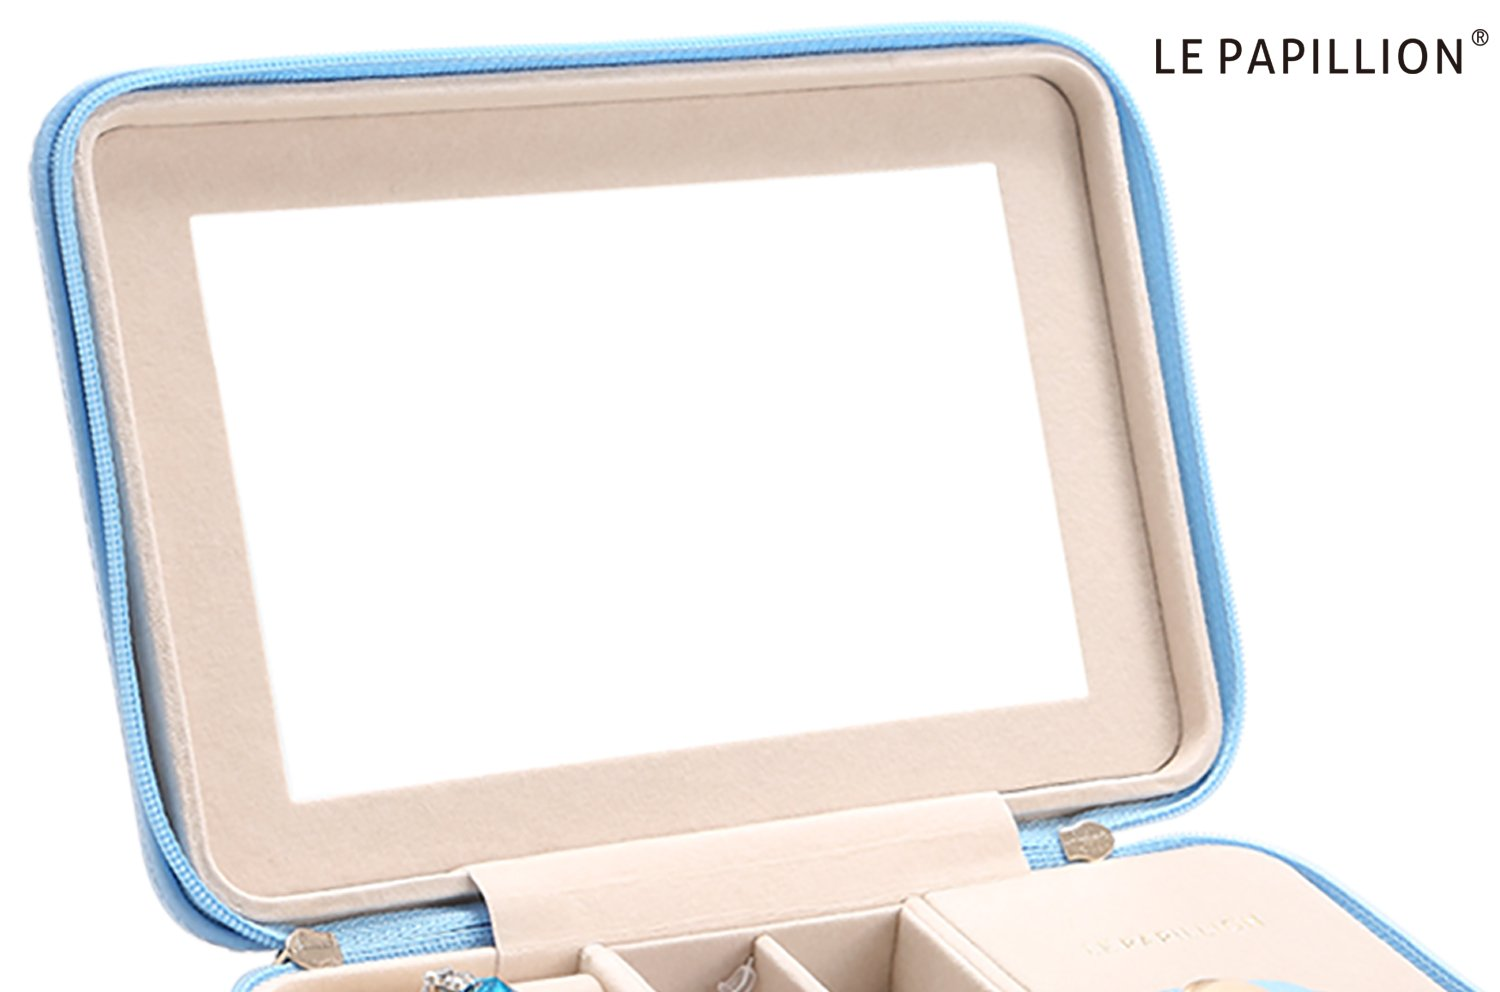 LE Papillion Small Jewelry Box Travel Jewelry Box Jewelry Travel Case Jewelry Organizer with Large Mirror, Gifts for Women, Great Gift Idea(Blue) by LE PAPILLION JEWELRY (Image #3)